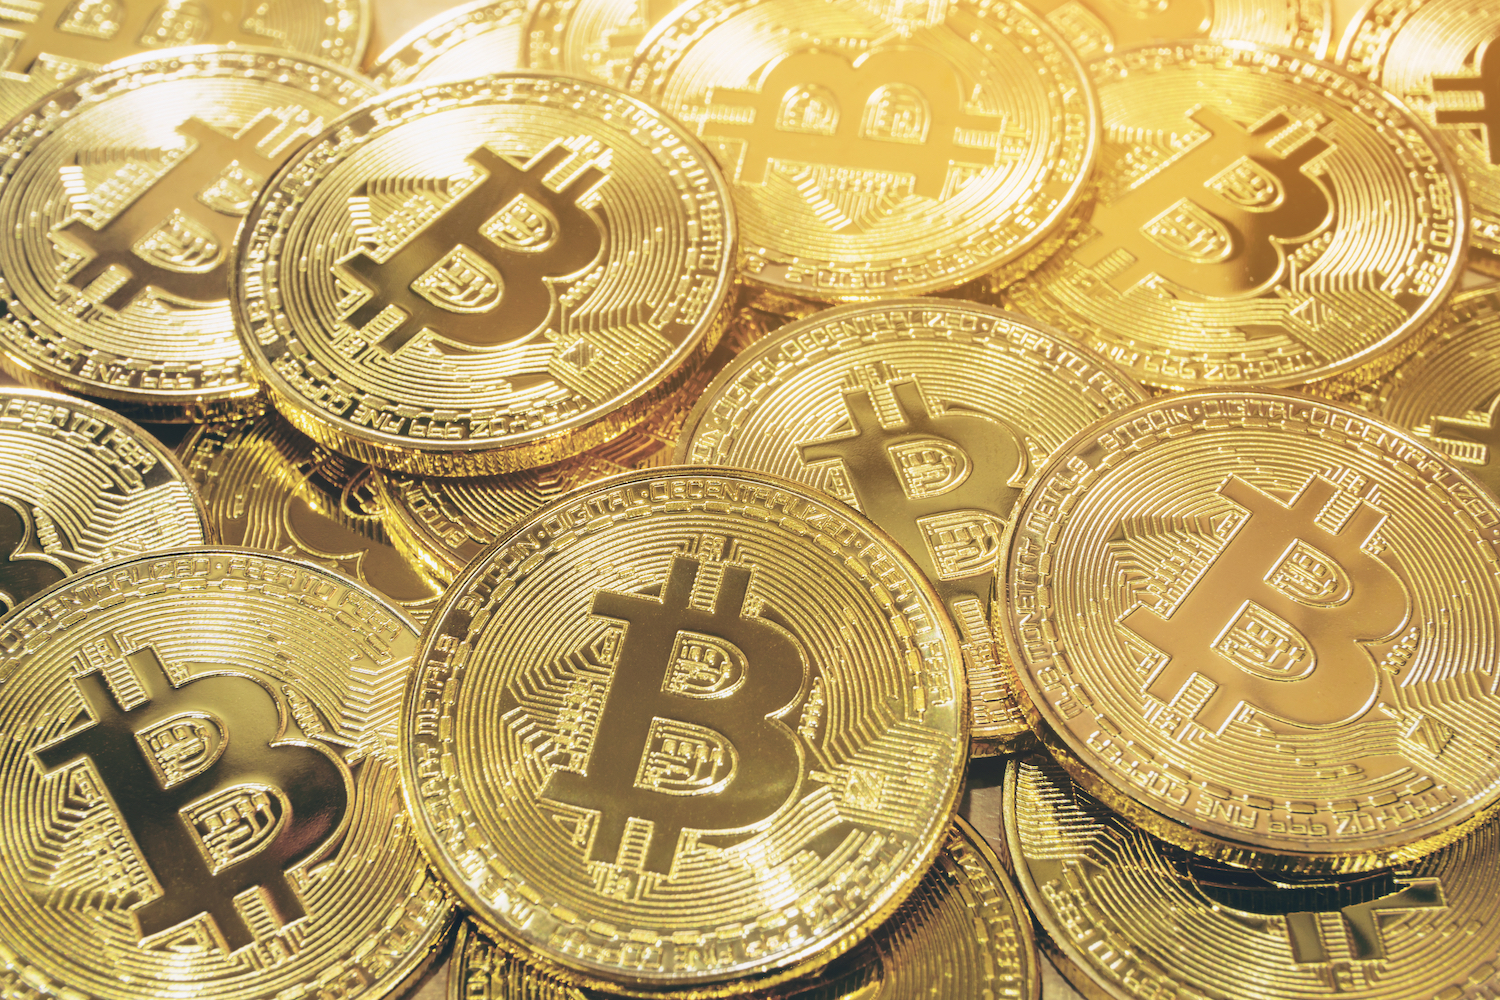 Pivotal For Bitcoin S Price